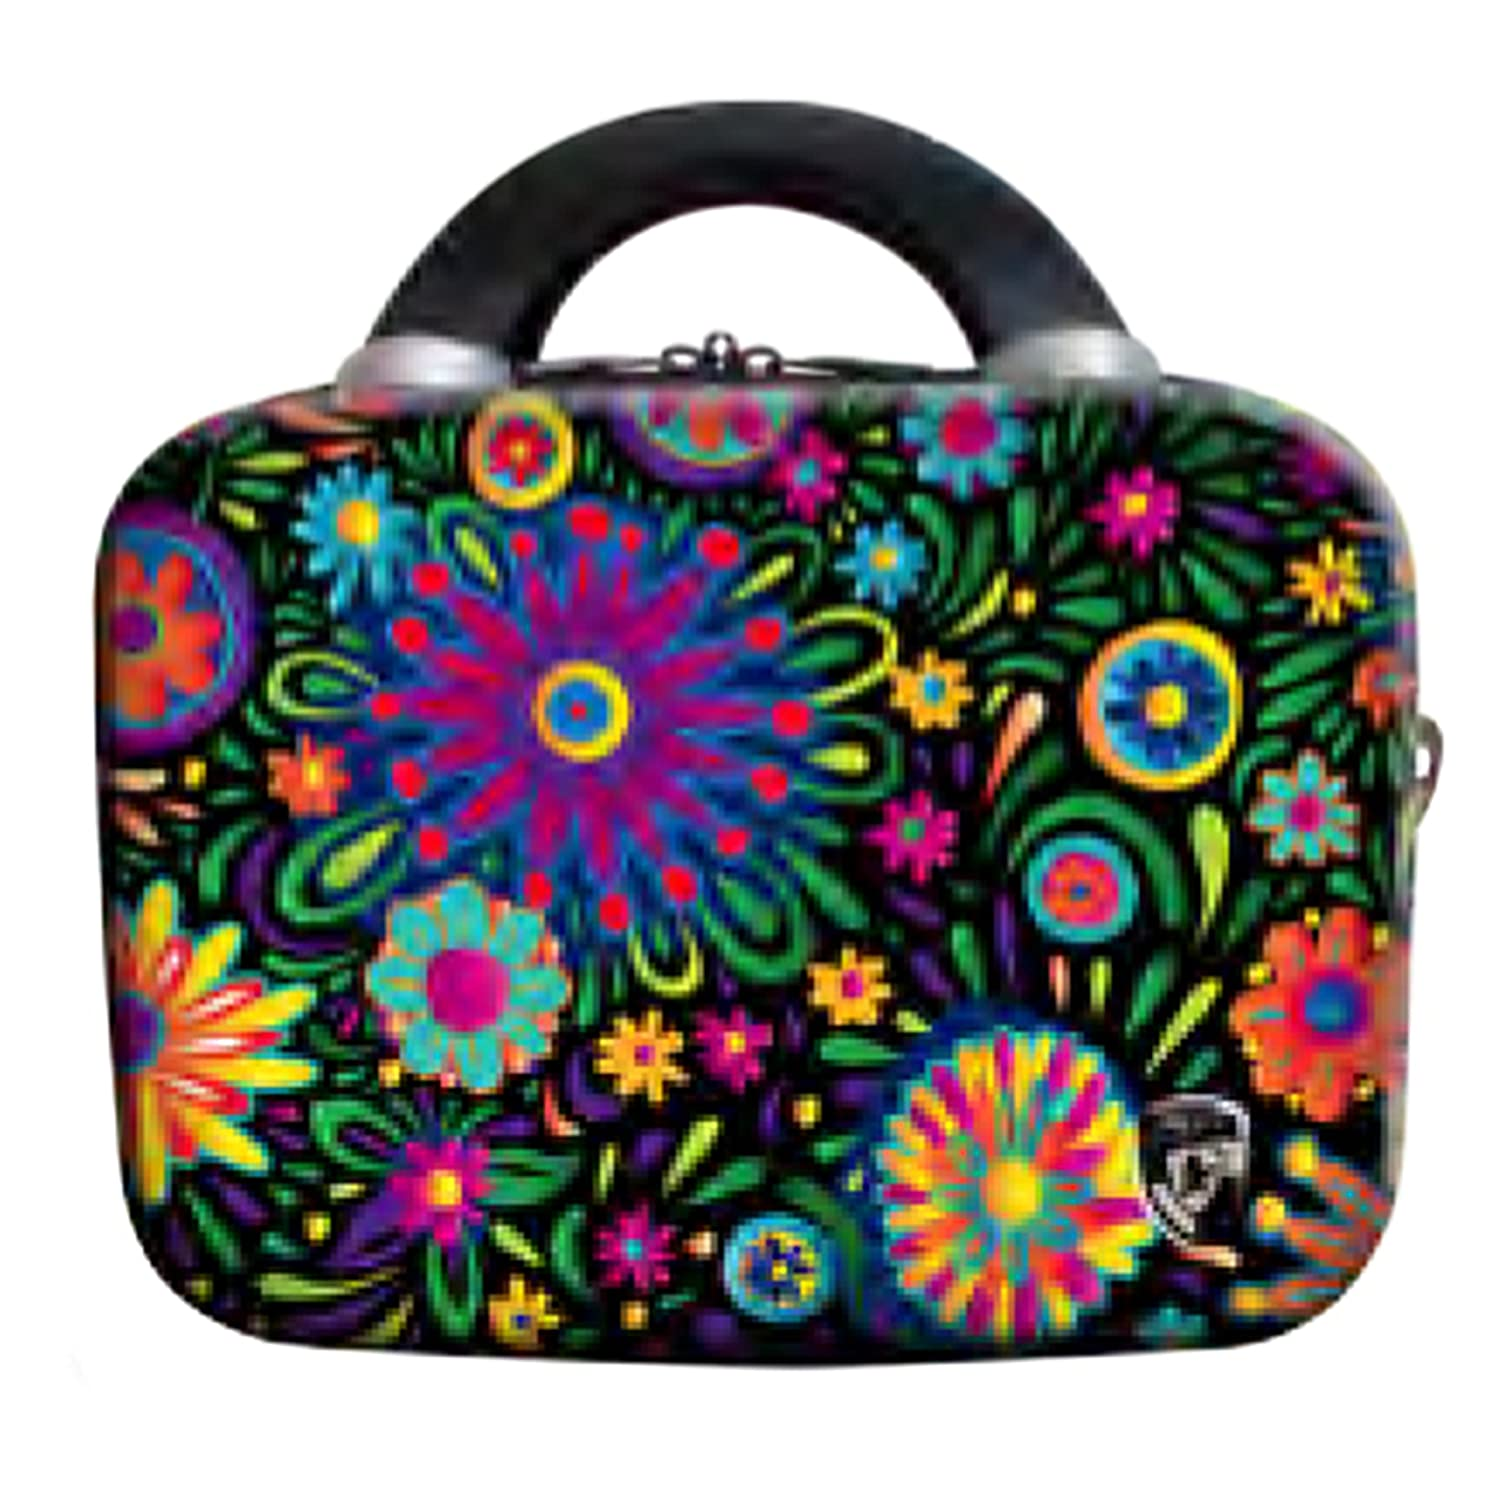 ... 50% SALE ... PREMIUM DESIGNER Hartschalen Koffer - Heys Künstler Limon Flowers Dance - Beauty-Case